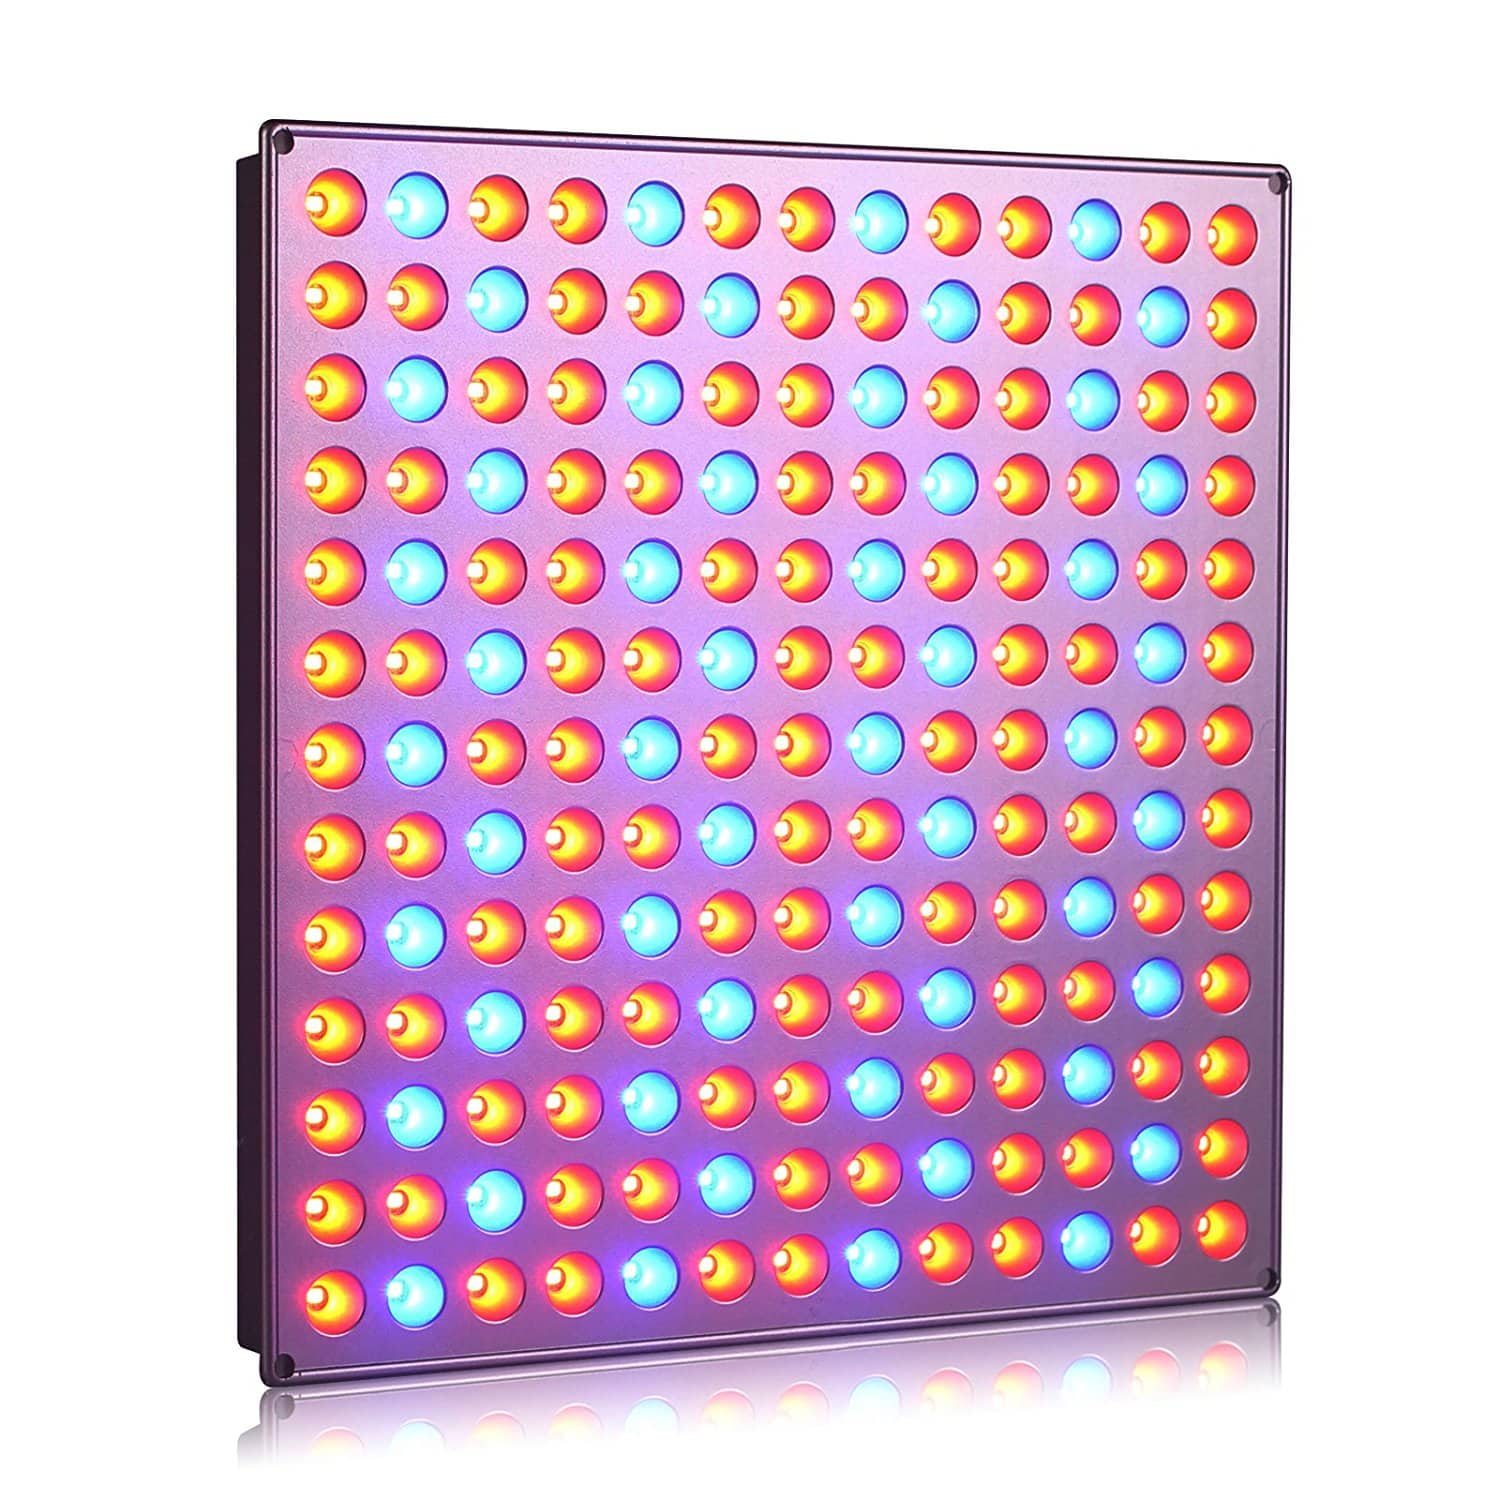 45W LED Plant Grow Light with Red Blue Spectrum for $19.97 + FS (with Prime)